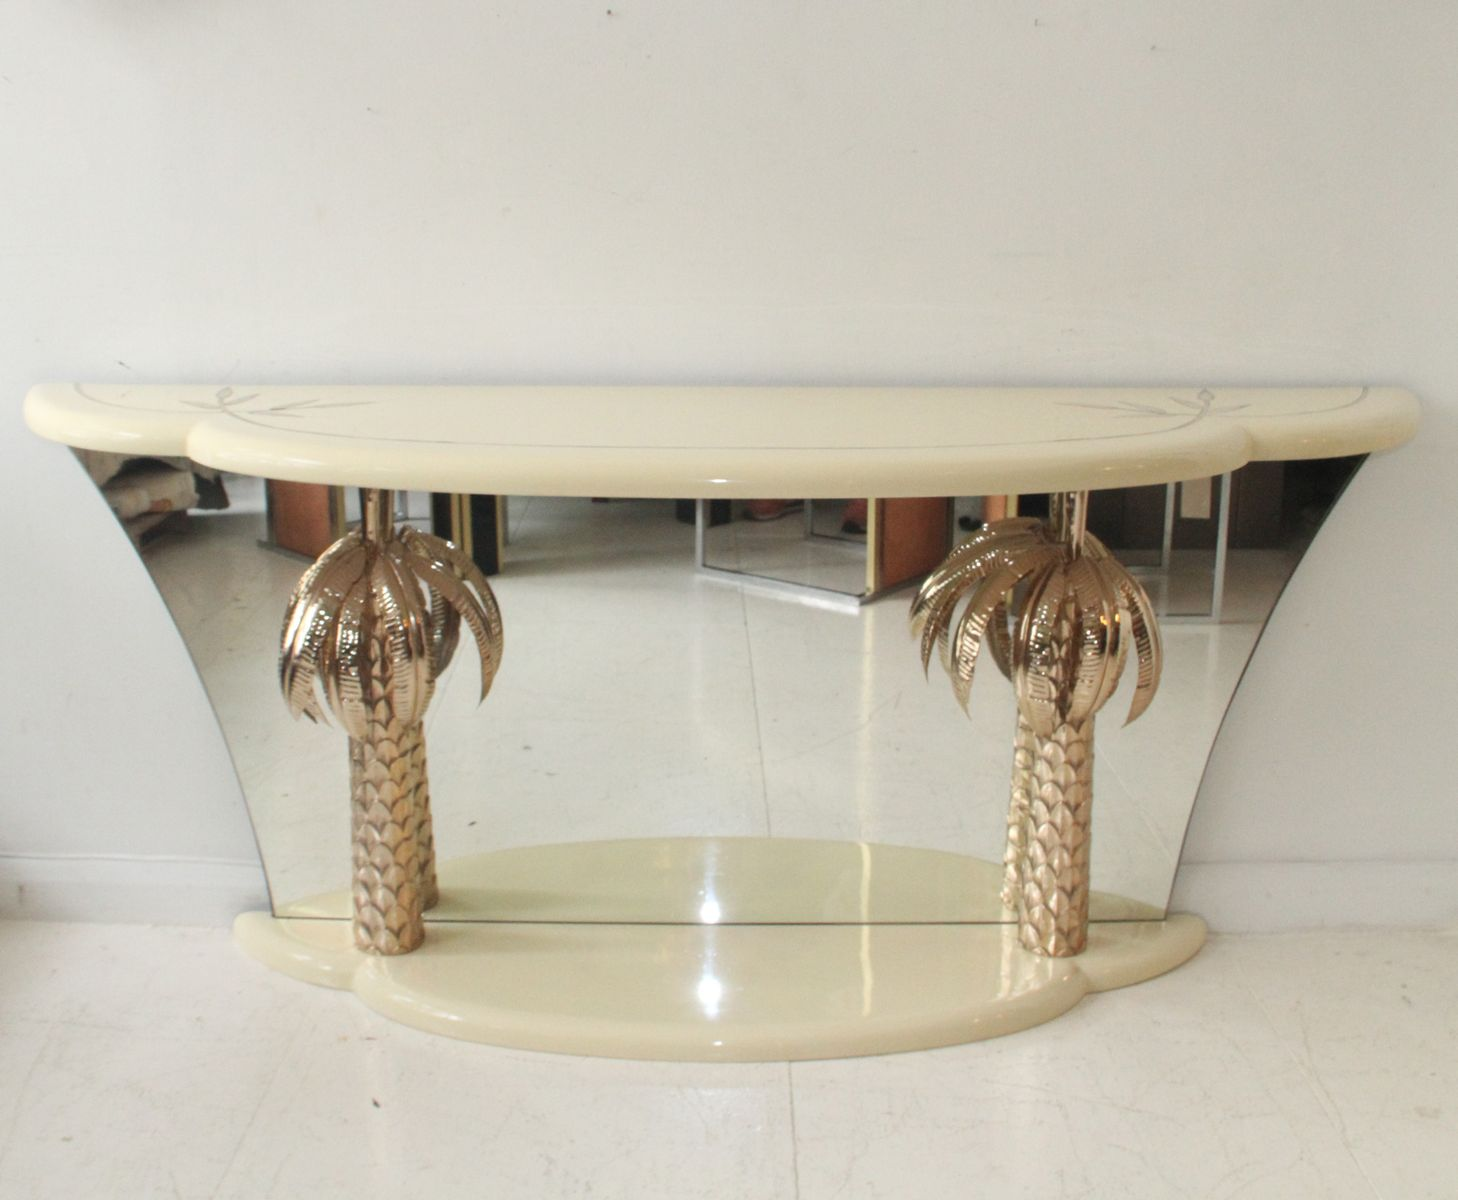 italian lacquer furniture. italian lacquer furniture. vintage and brass palm tree console table for sale at furniture